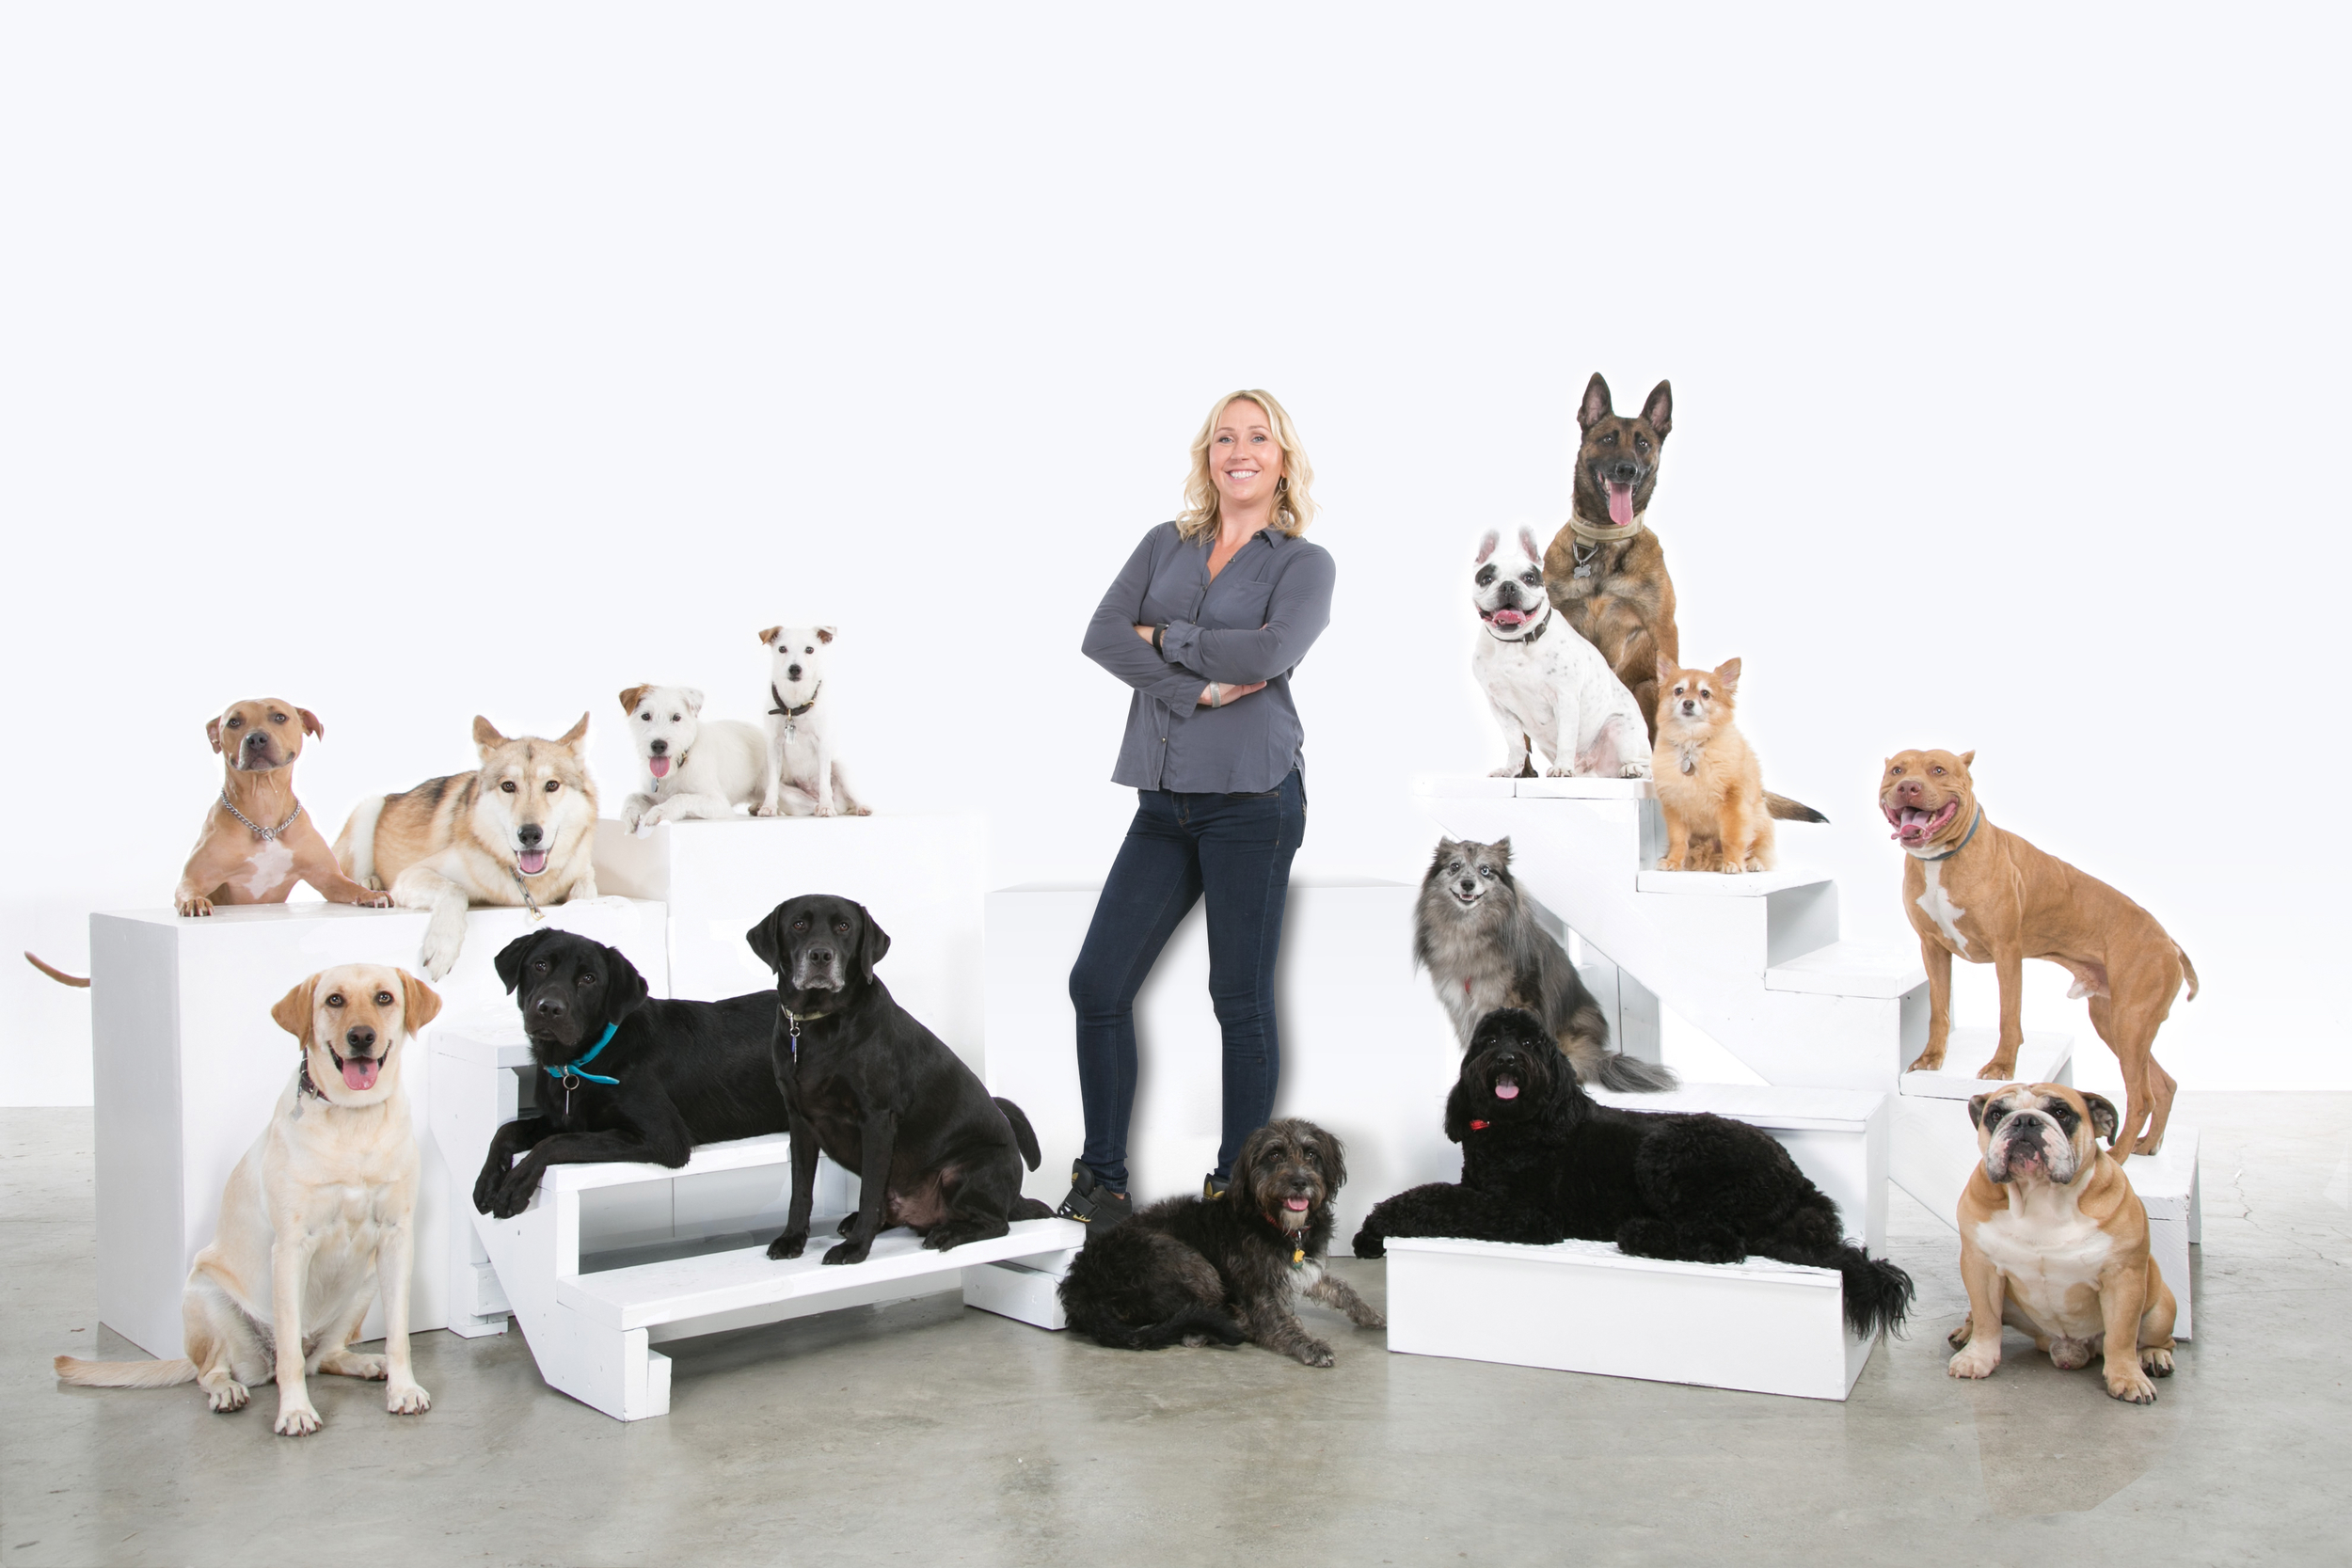 So many of my amazing clients' dogs! Without them, we would not be what we are today!